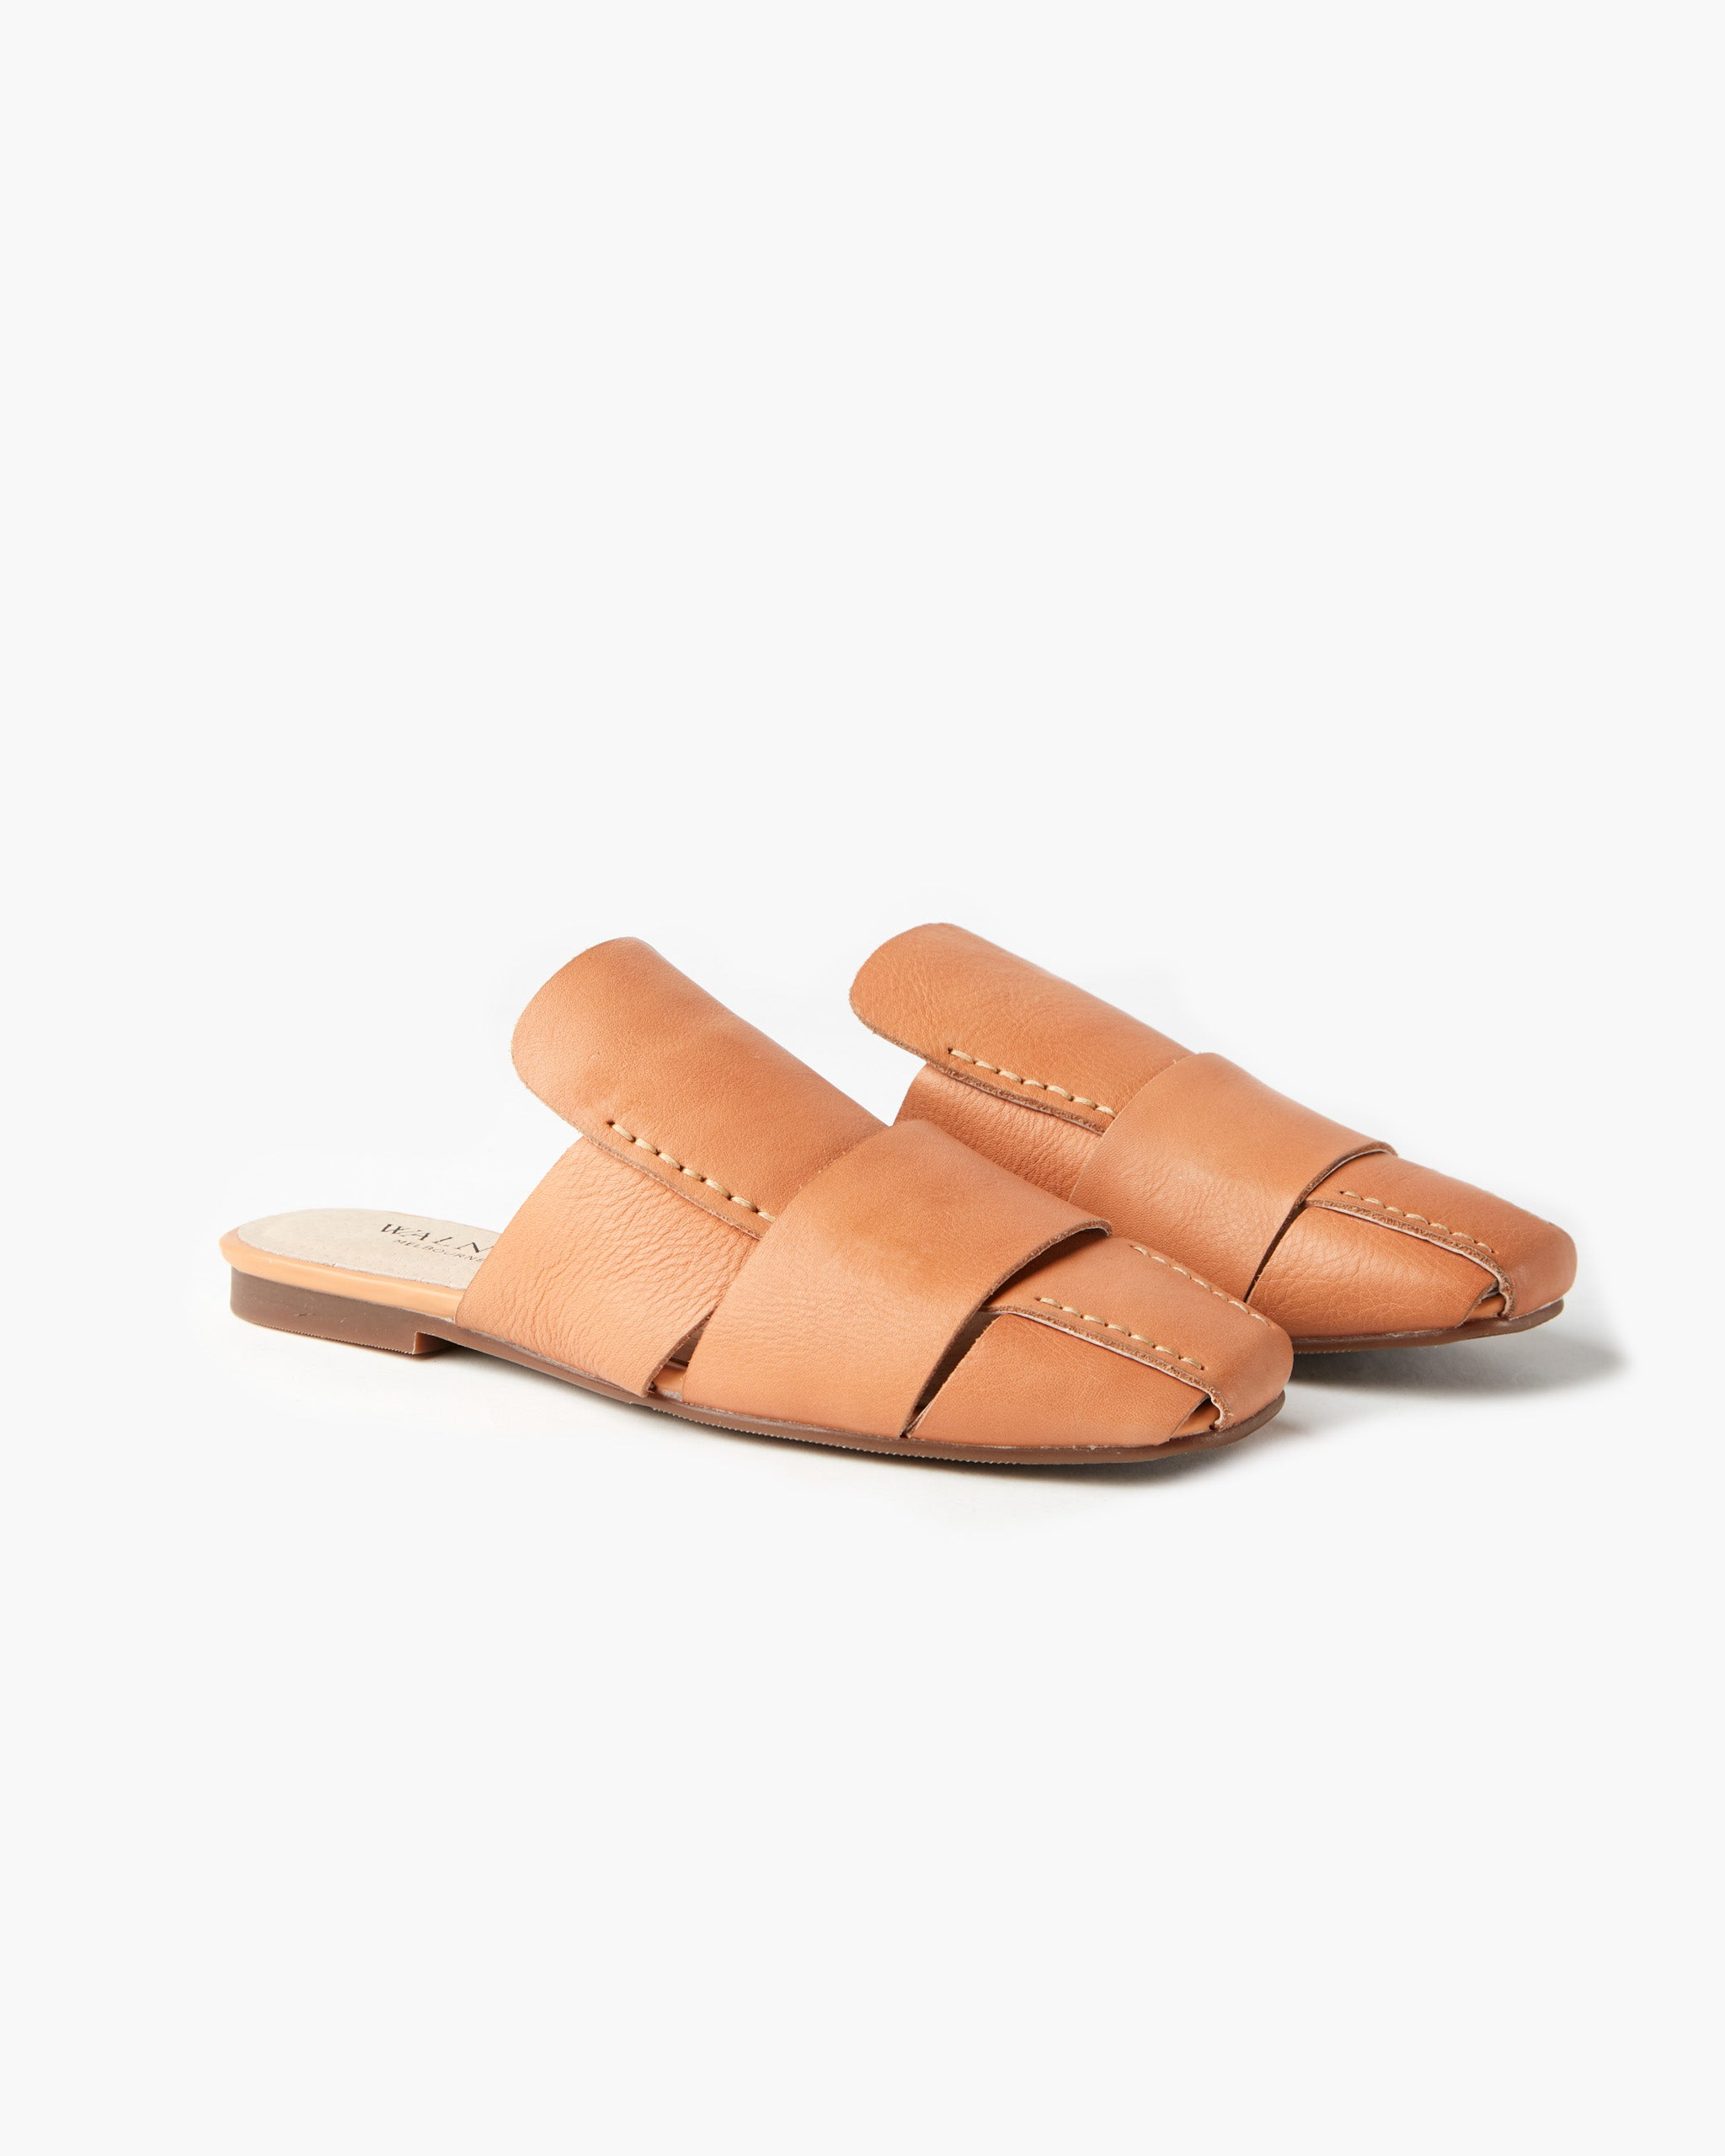 Clair Leather Mule - Honey